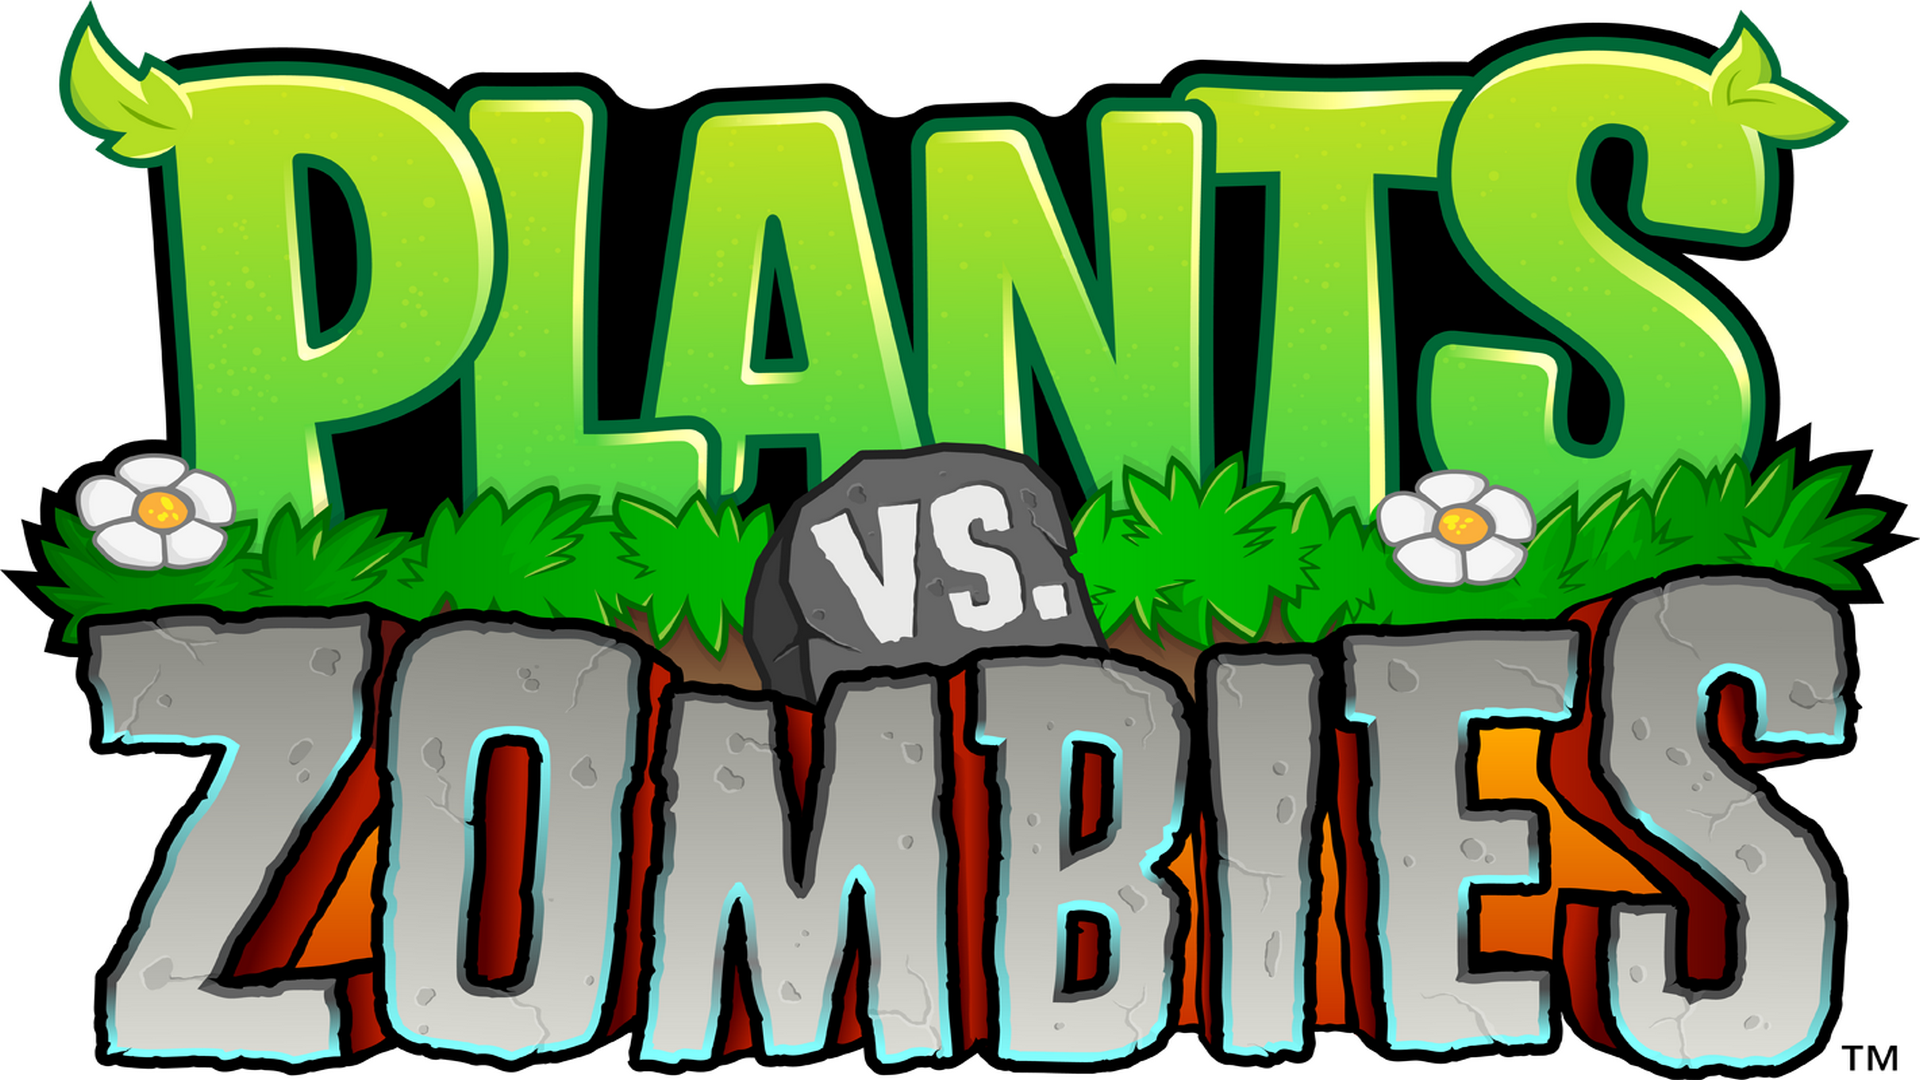 Wallpapers for Plants Vs Zombies – Resolution 1920x1080 px